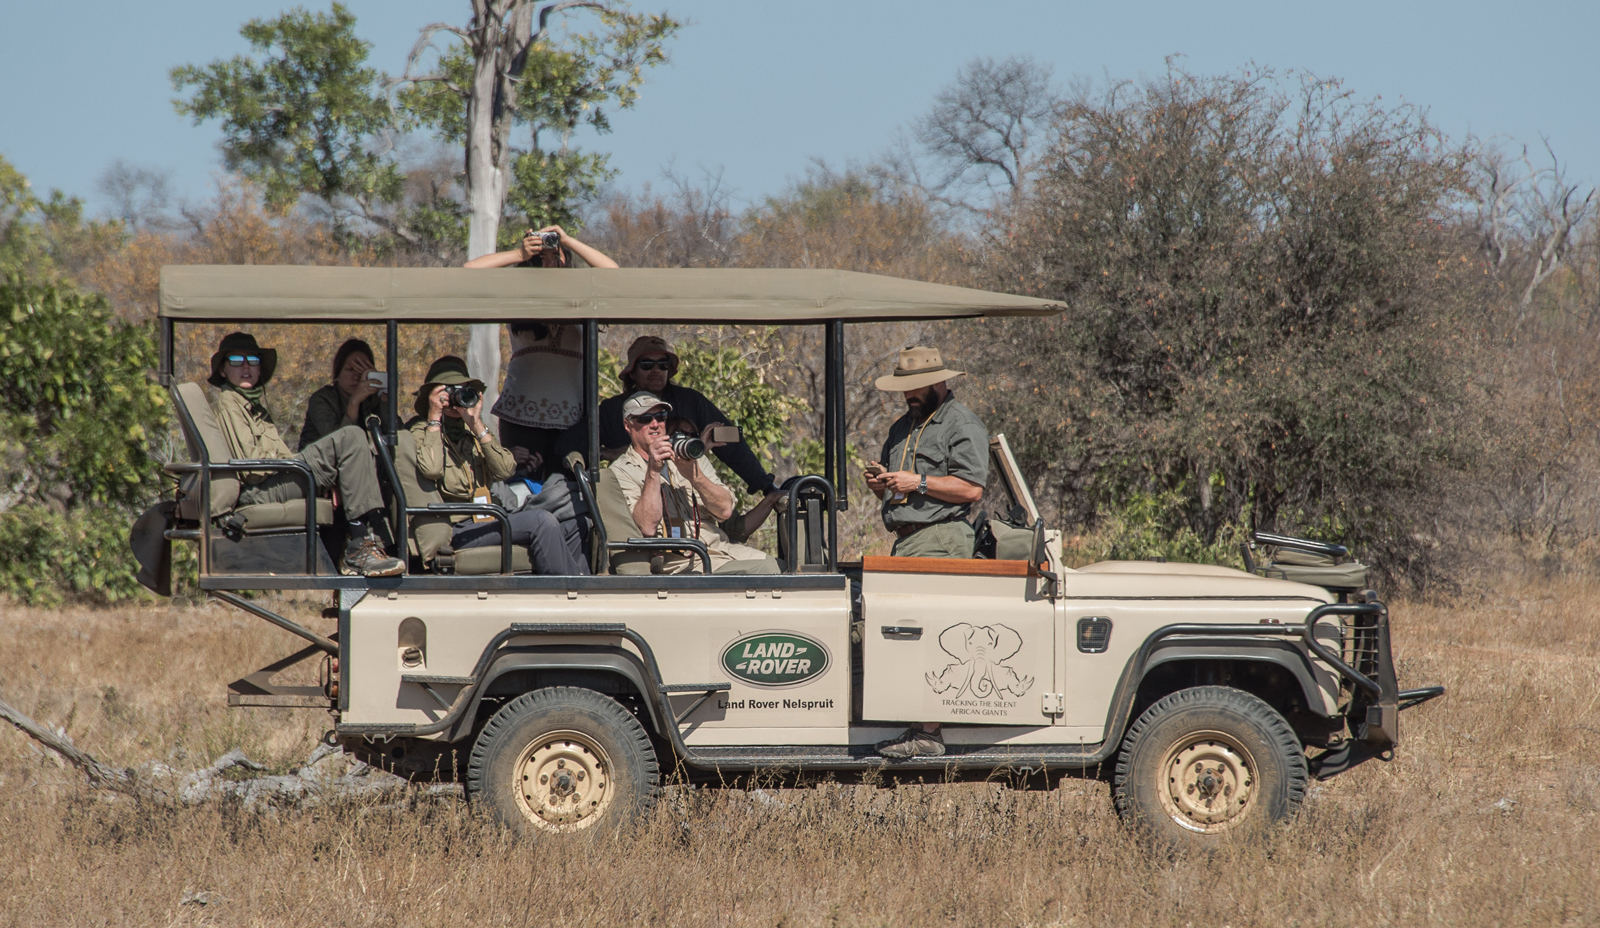 Animal spotting from a safari vehicle